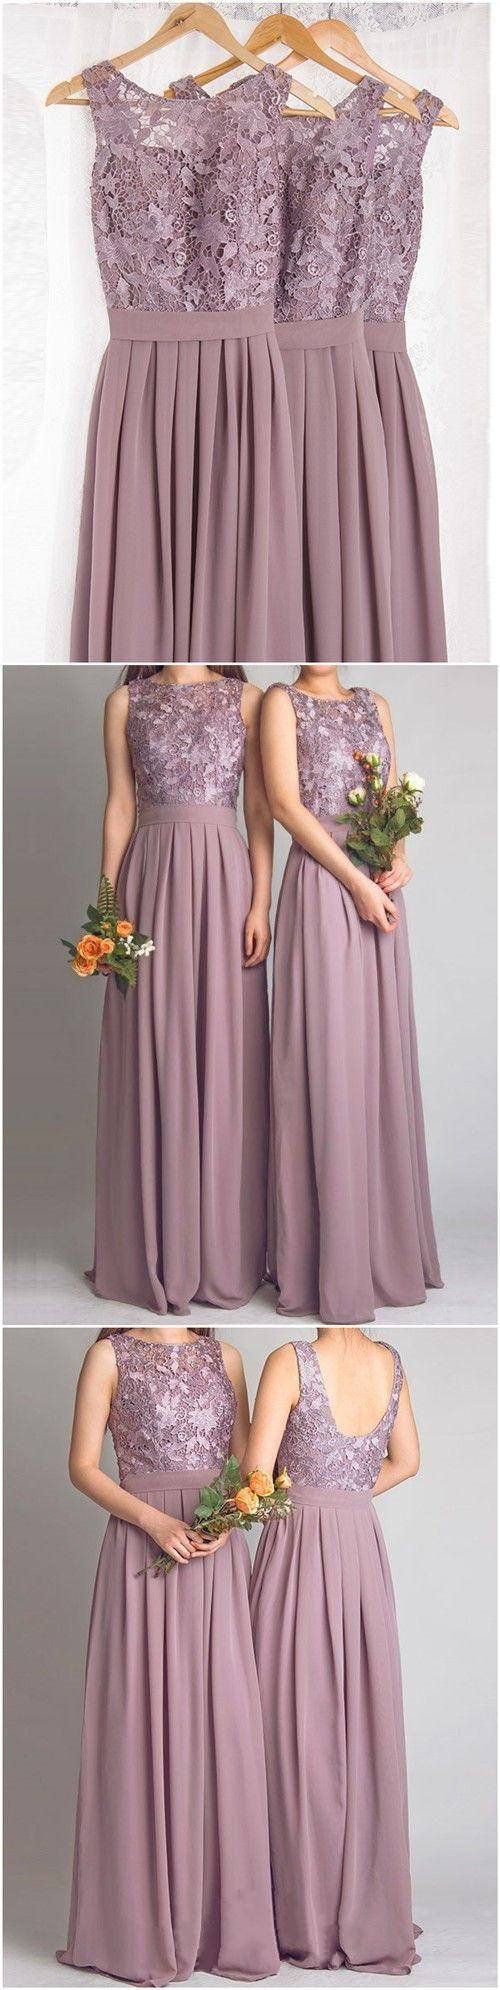 best formal images on pinterest ball gown classy dress and